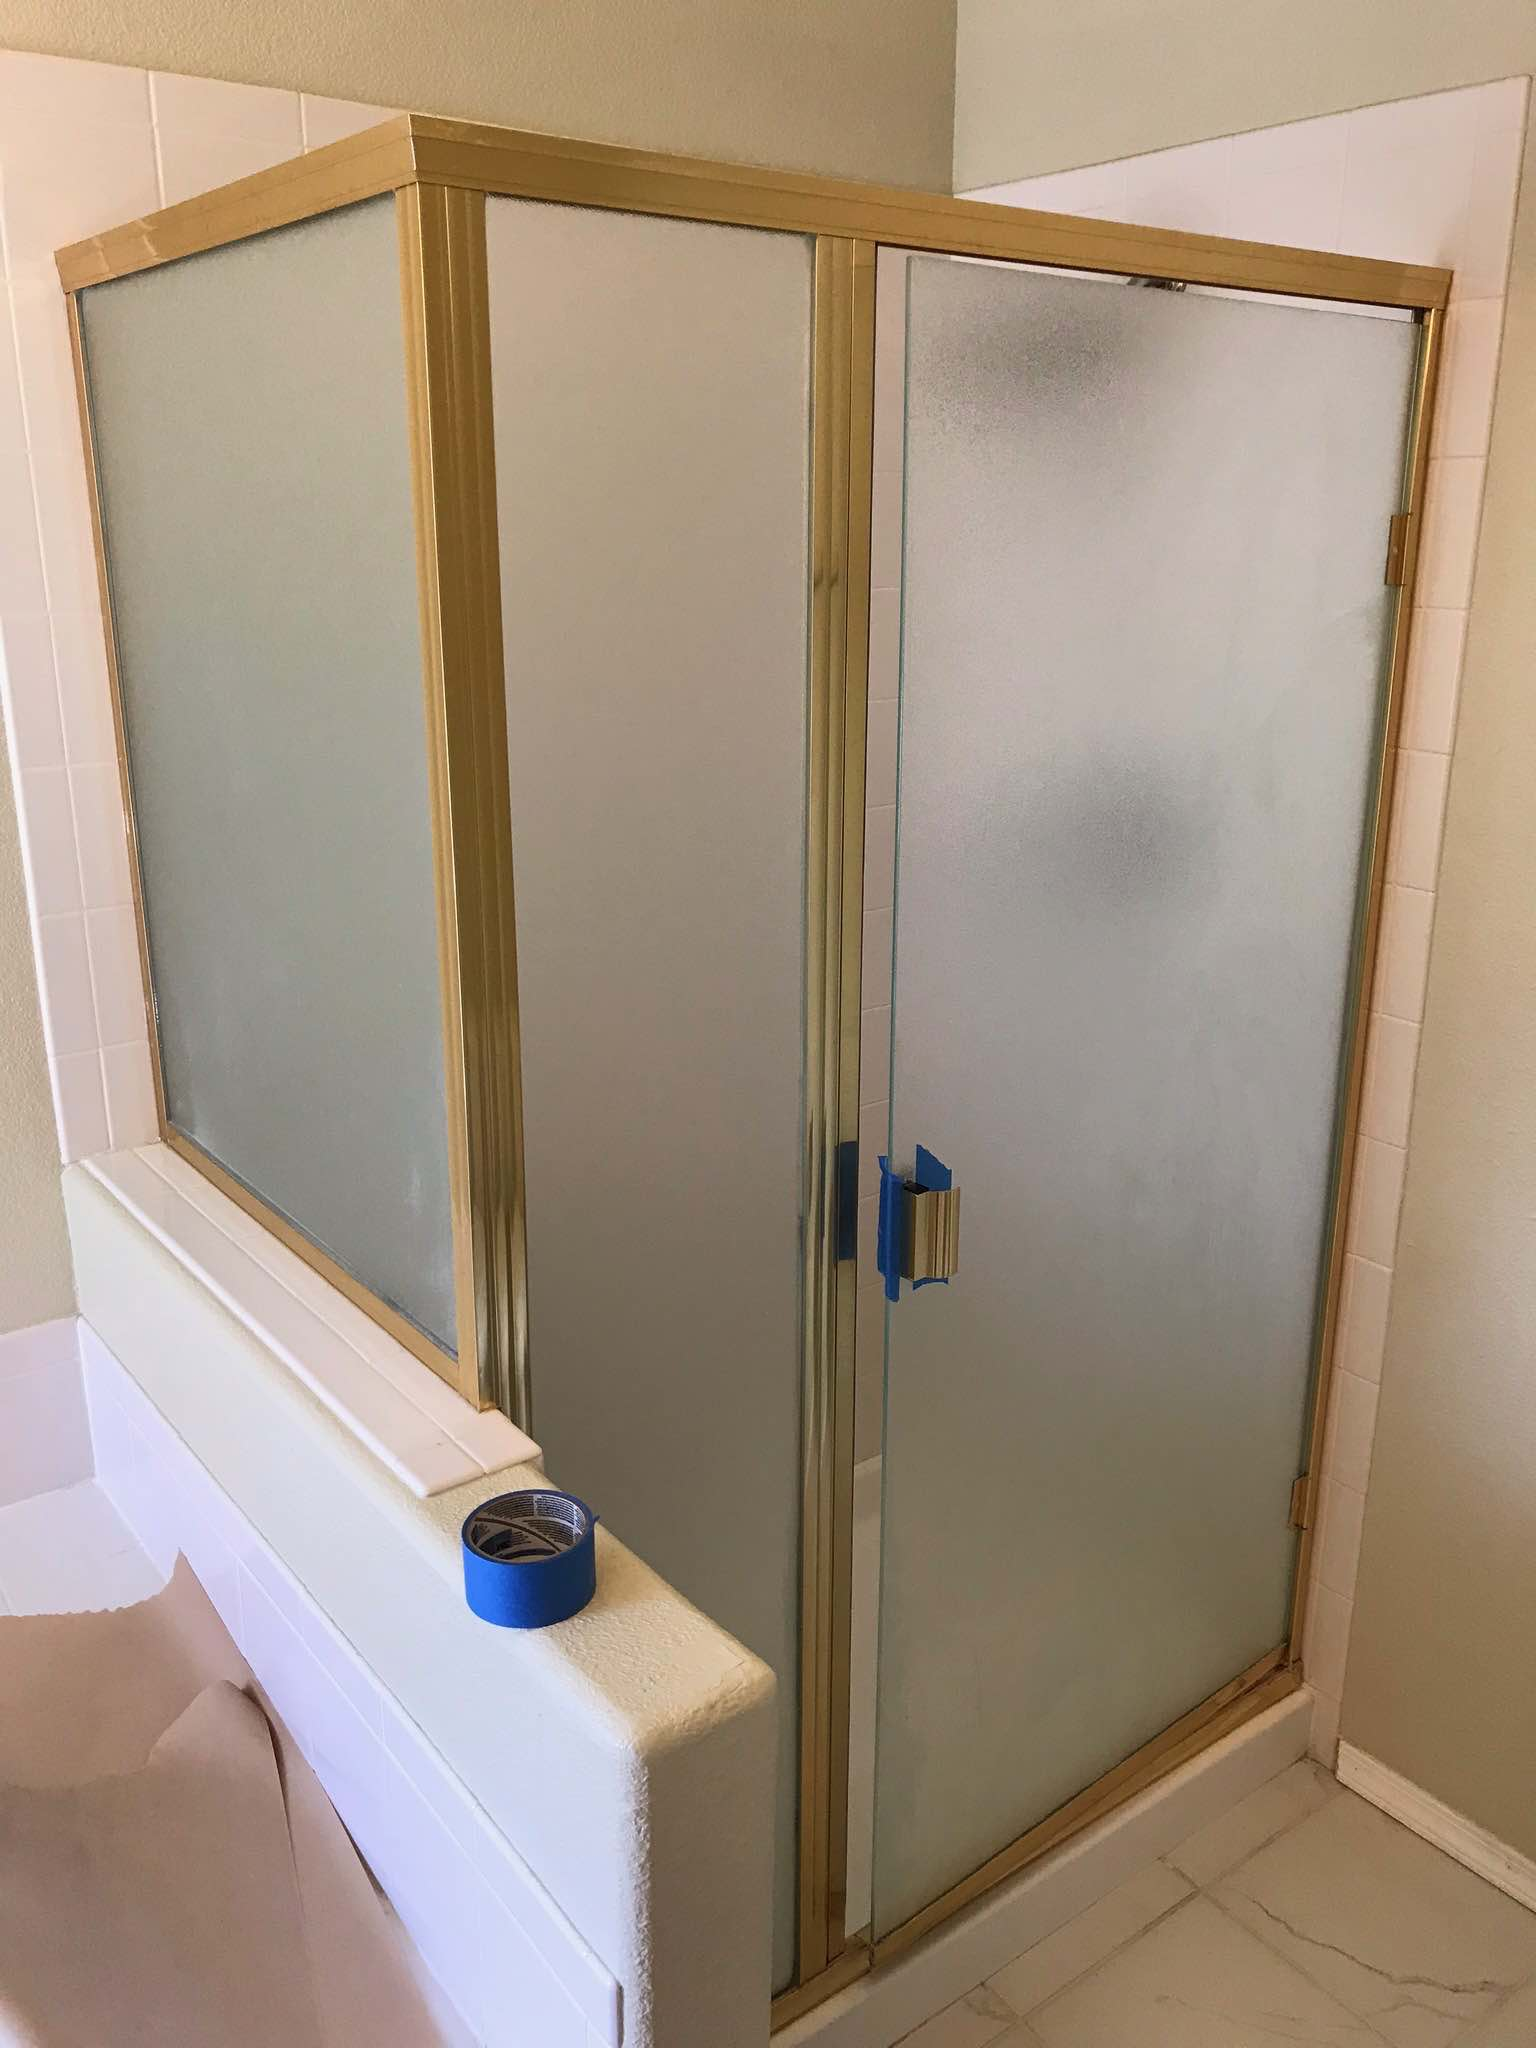 How To Paint A Brass Shower Frame For 30 Shower Door Diy